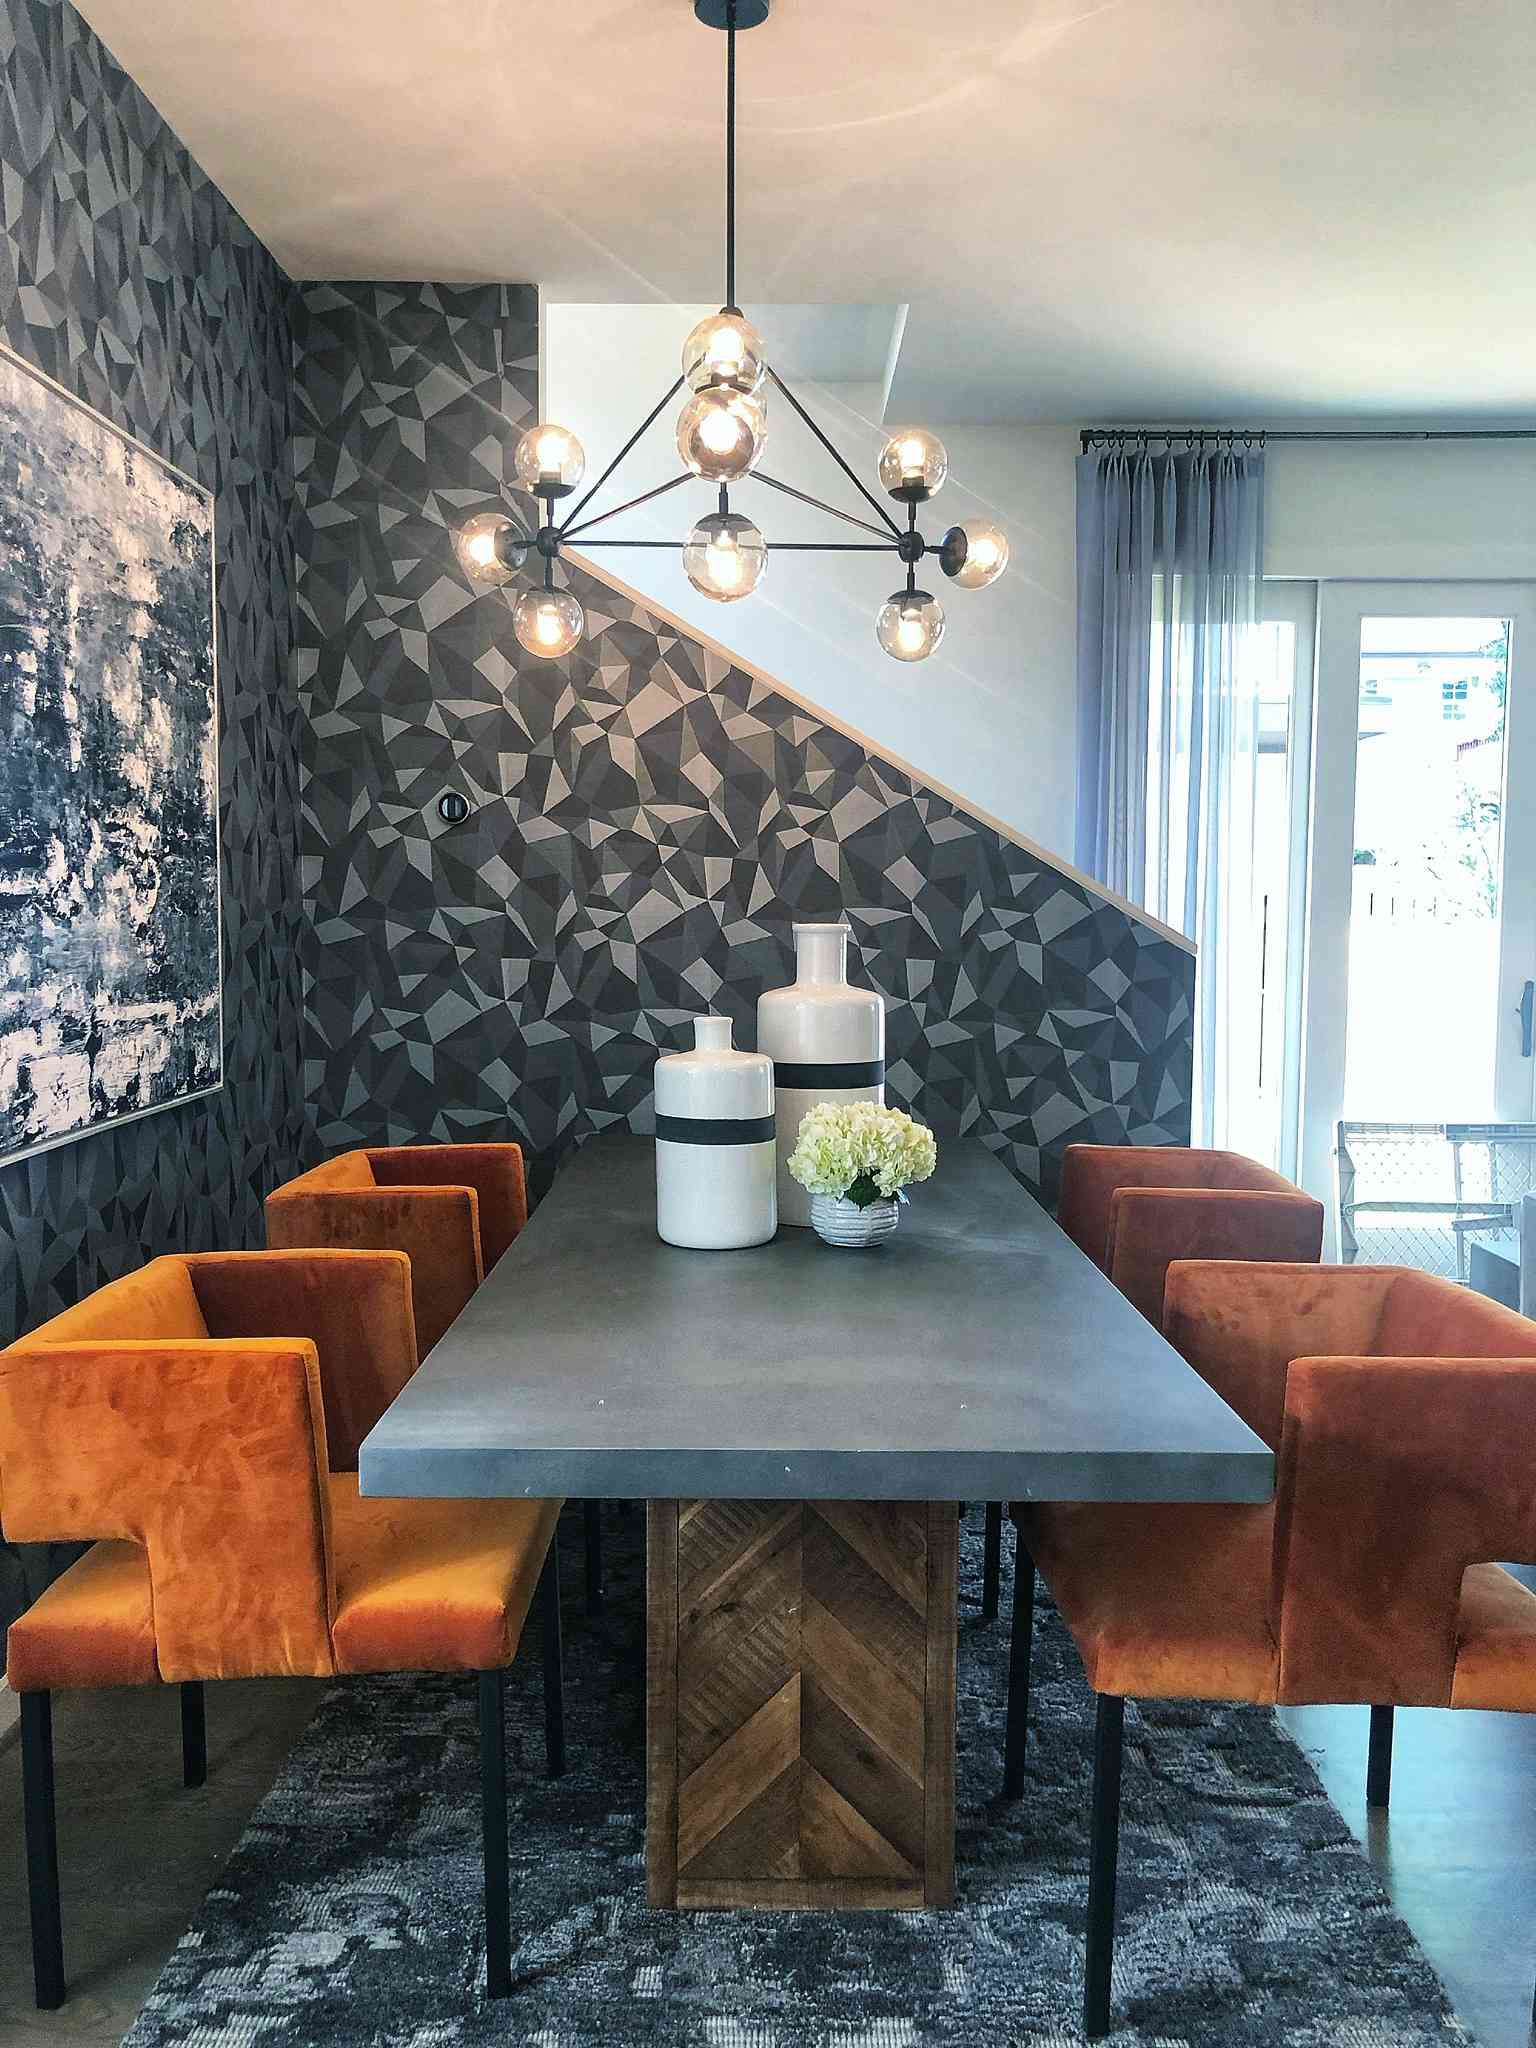 Wallpaper in modern, luxe dining room.